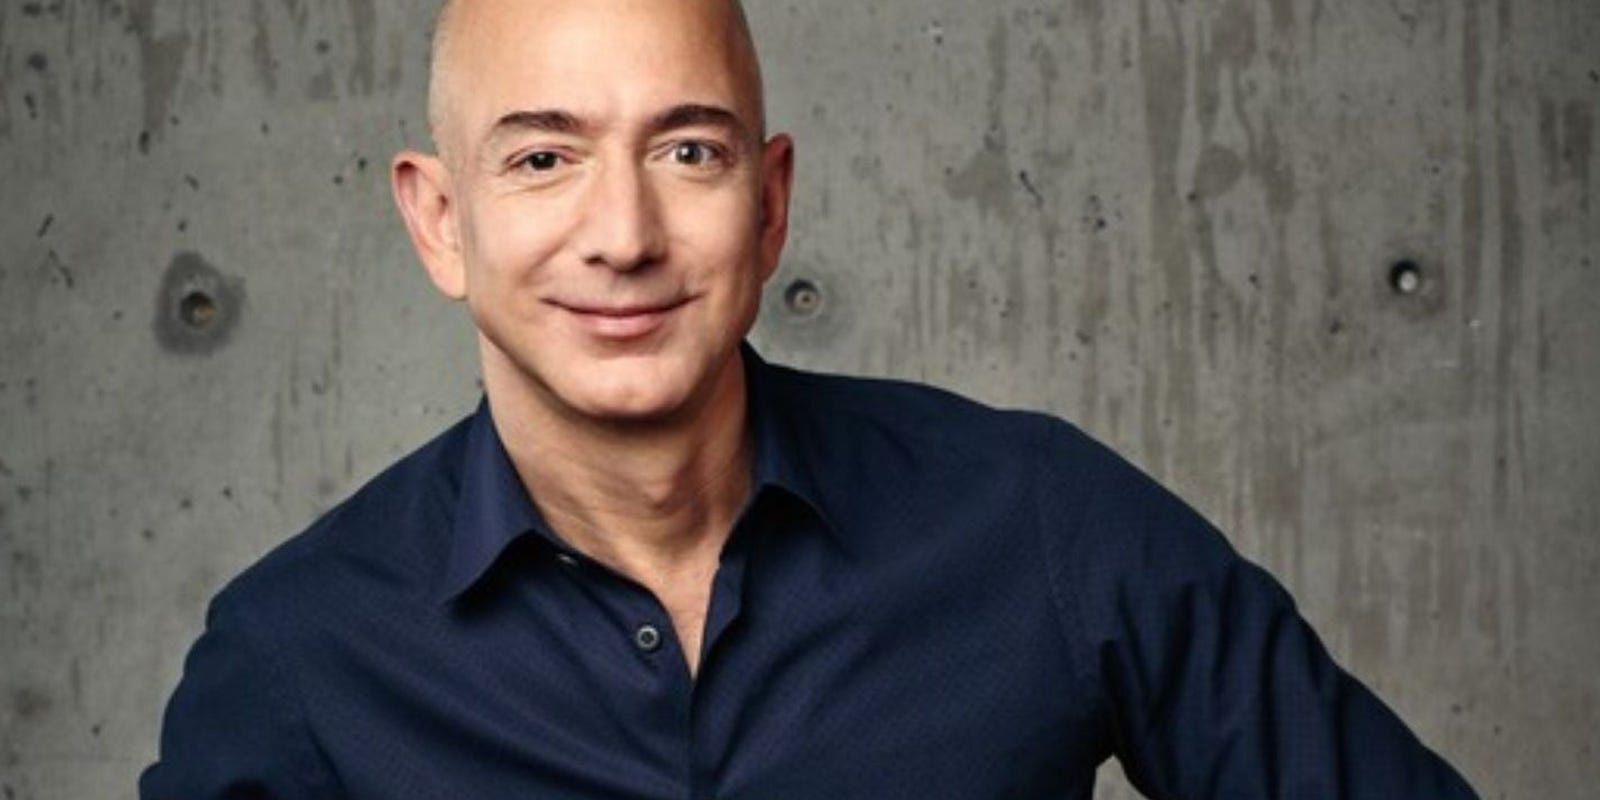 Jeff Bezos as world's first trillionaire sparks heated debate